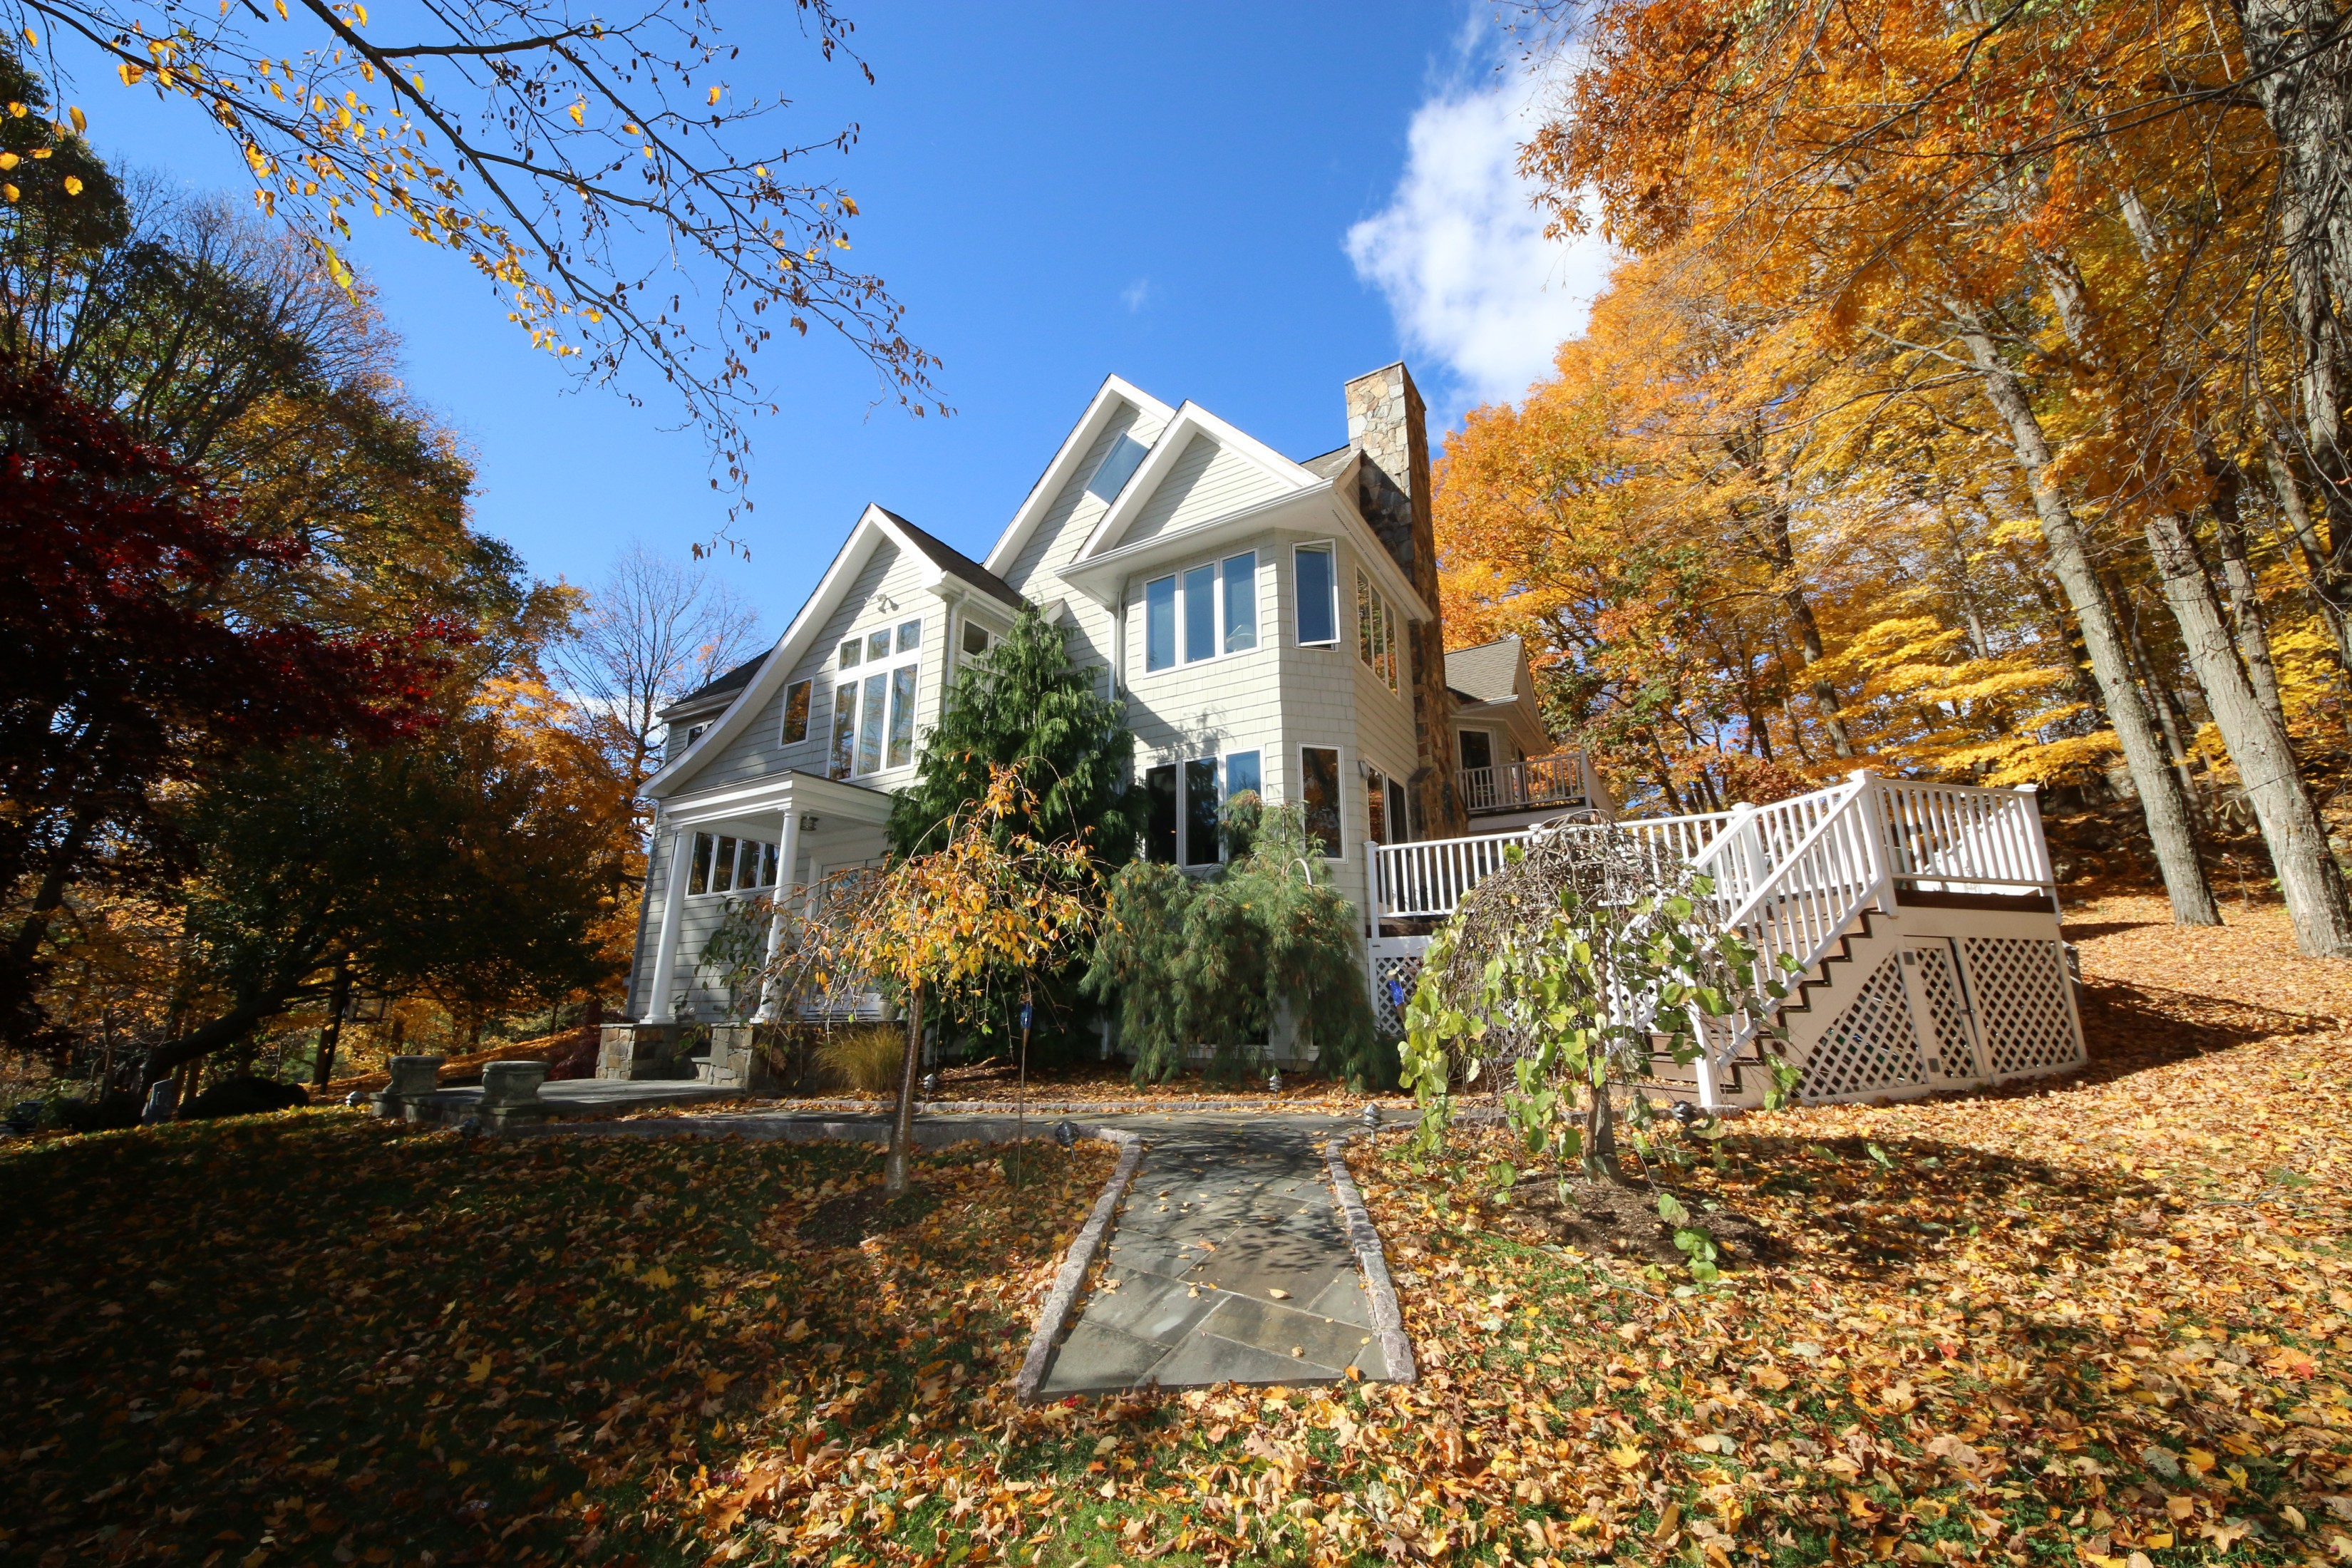 Single Family Home for Sale at Sought-after West Mountain Estates 51 Eleven Levels Road Ridgefield, Connecticut 06877 United States